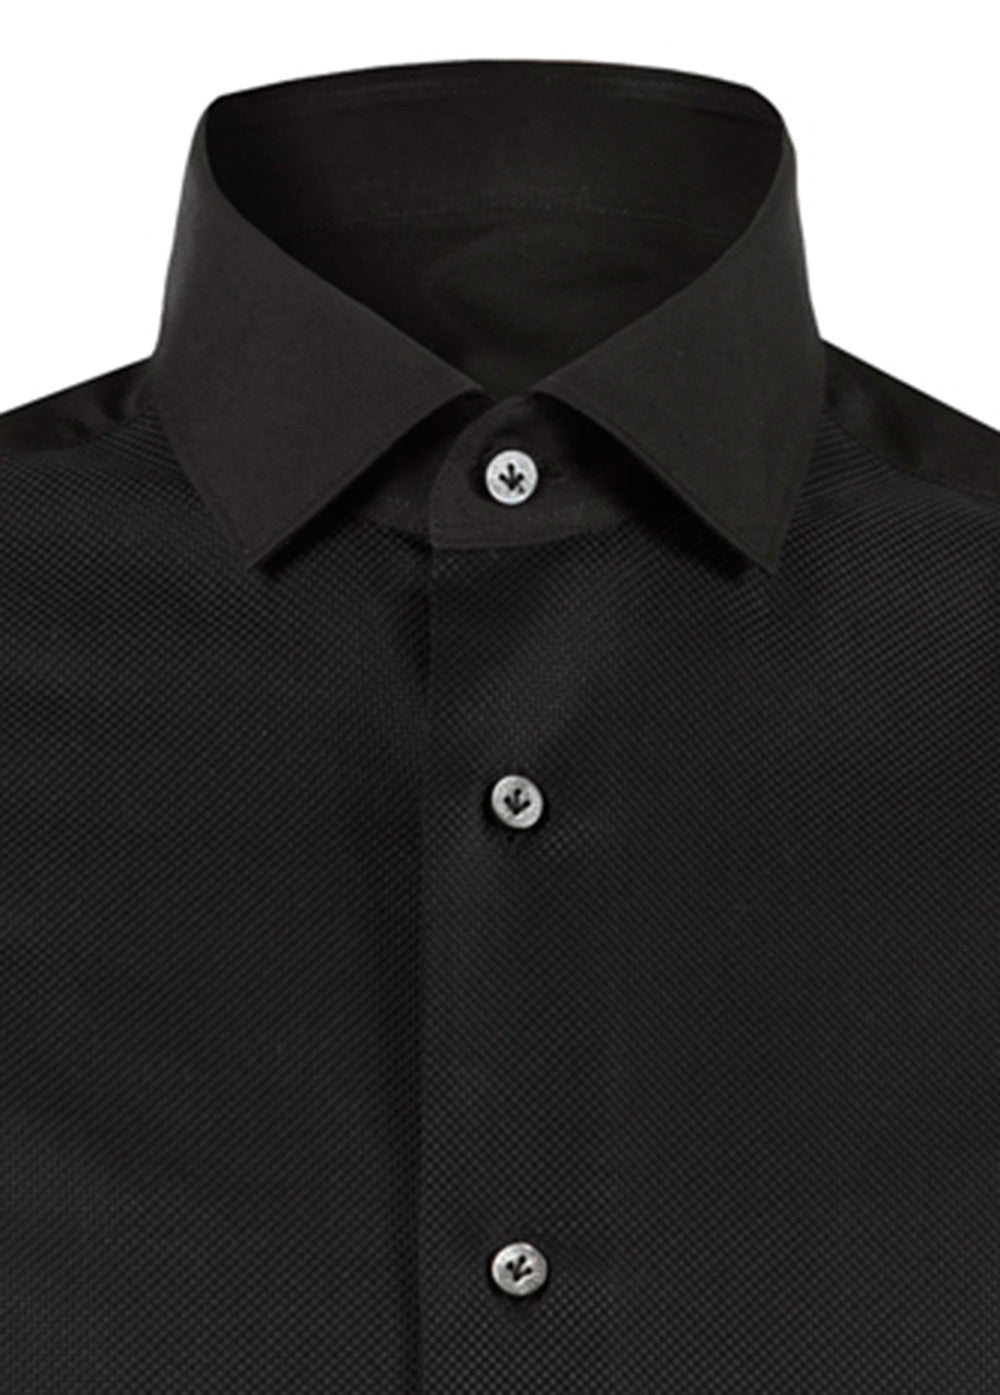 Black Luxury Cotton Bib Shirt